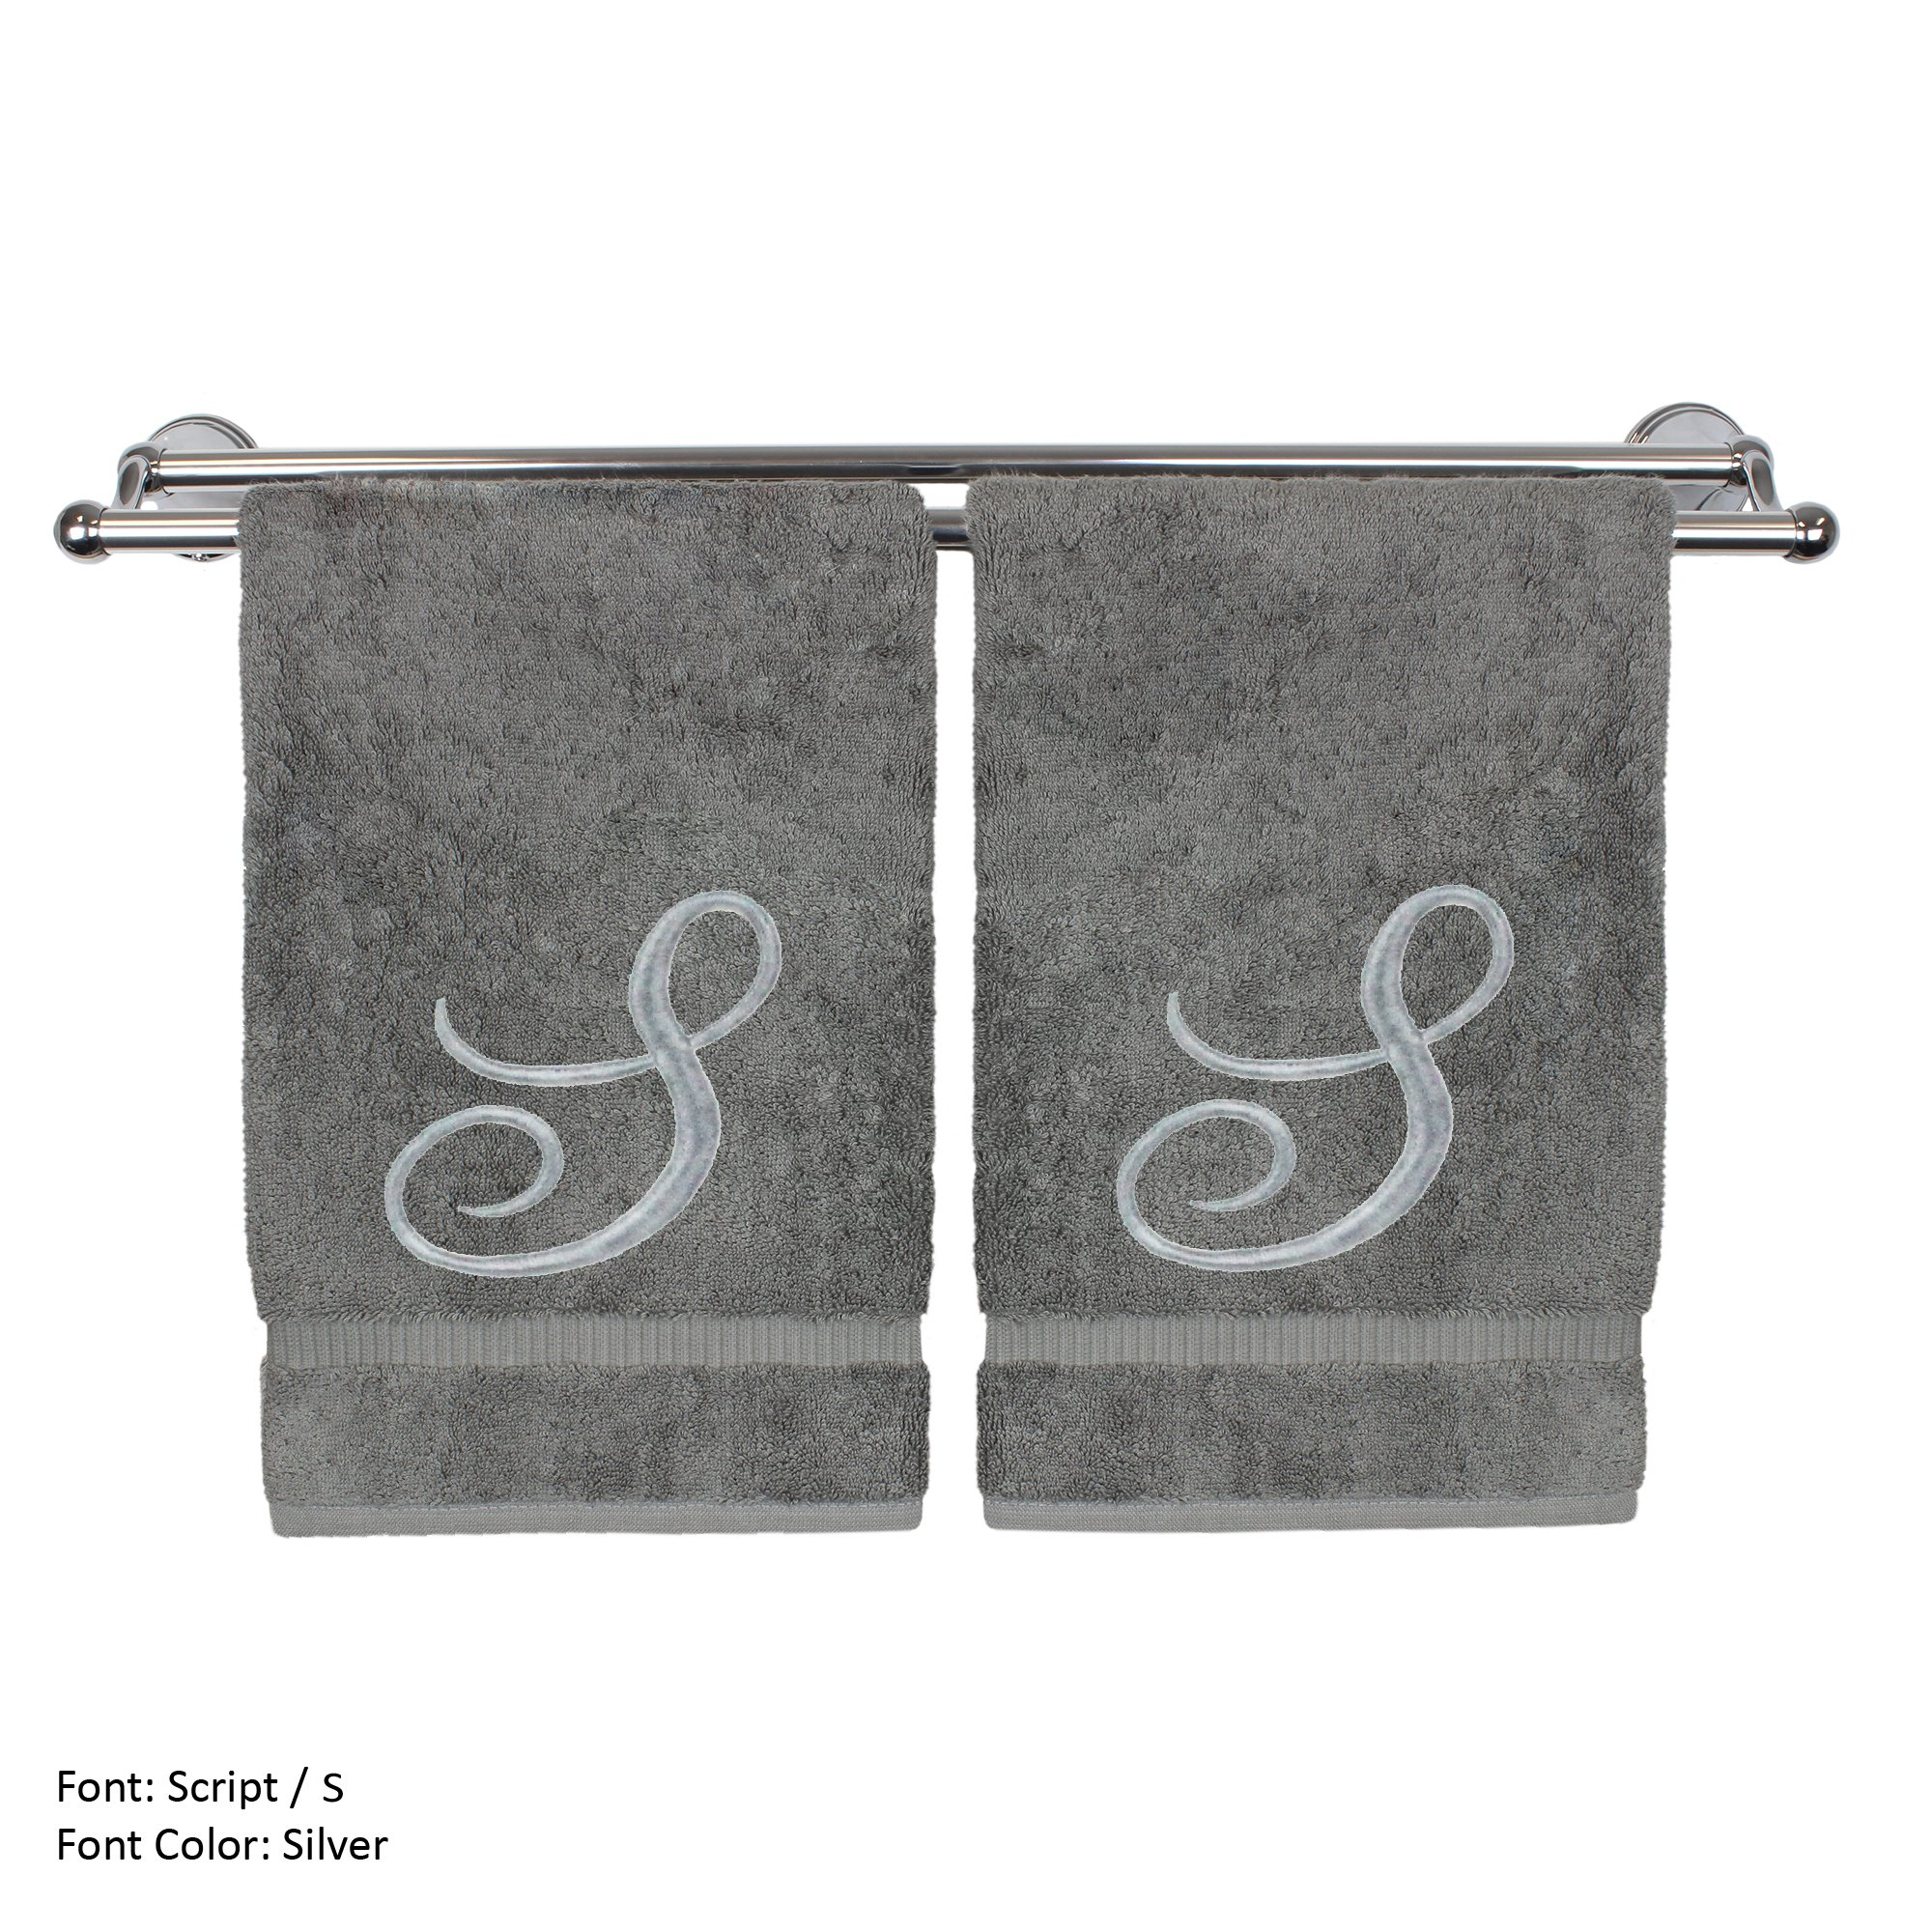 Monogrammed Hand Towel, Personalized Gift, 16 x 30 Inches - Set of 2 - Silver Embroidered Towel - Extra Absorbent 100% Turkish Cotton- Soft Terry Finish - For Bathroom, Kitchen and Spa- Script S Gray